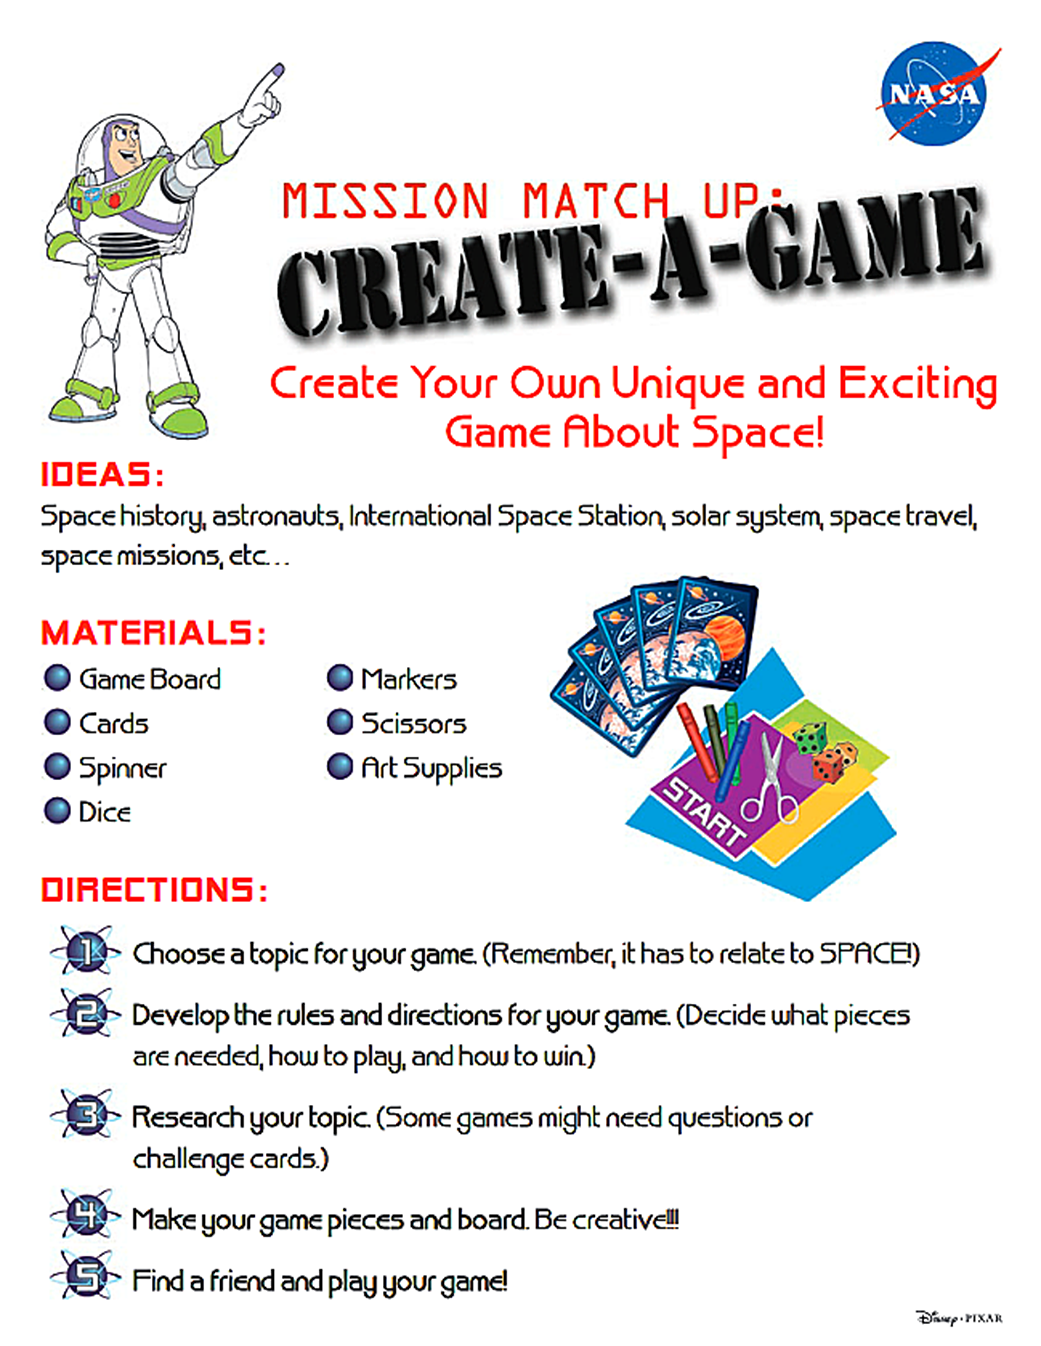 Buzz Lightyear Mission Matchup Create A Game Activity Nasa